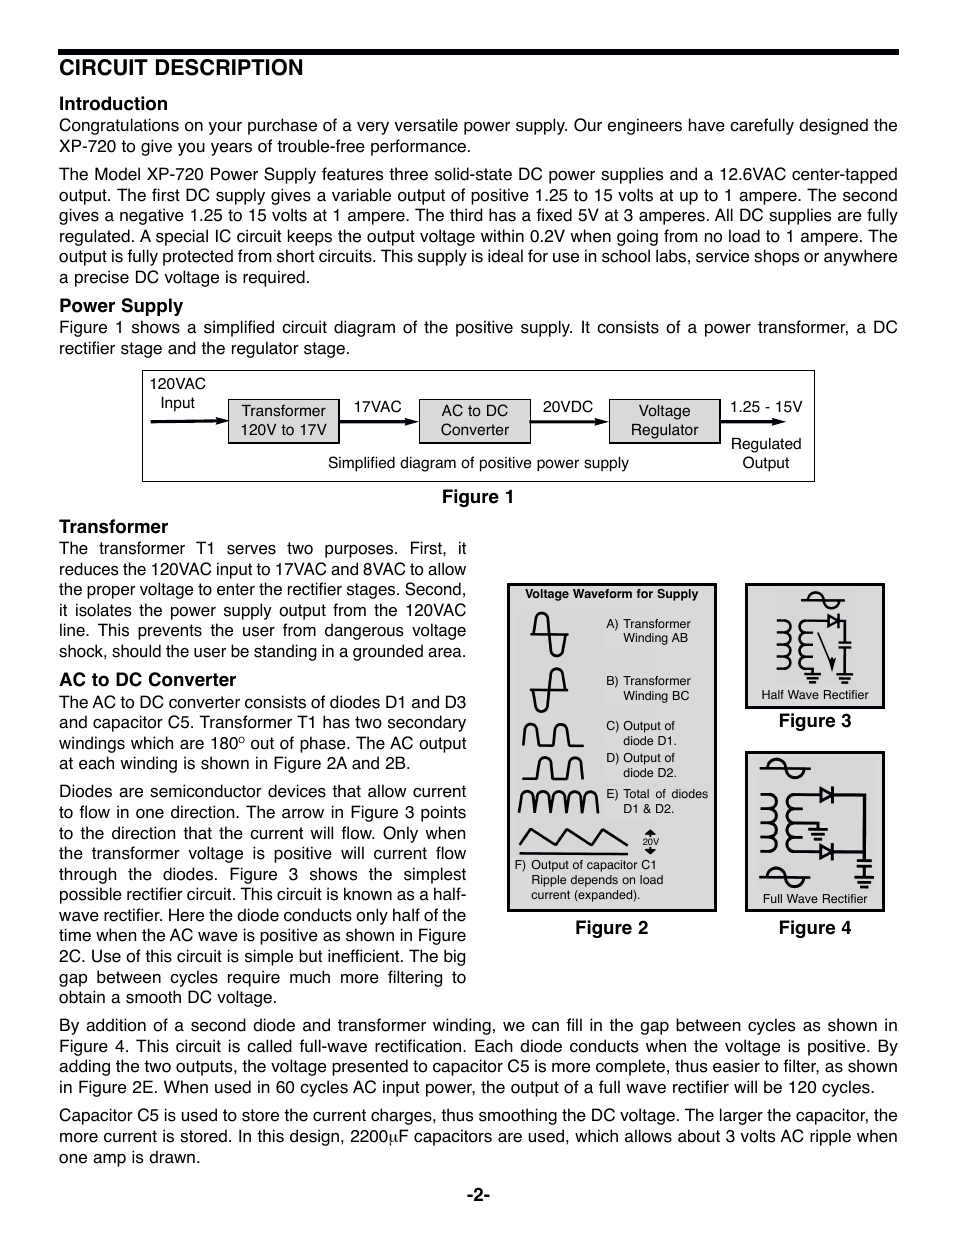 hight resolution of circuit description elenco triple supply w 12 6vac ct 1a user manual page 3 8